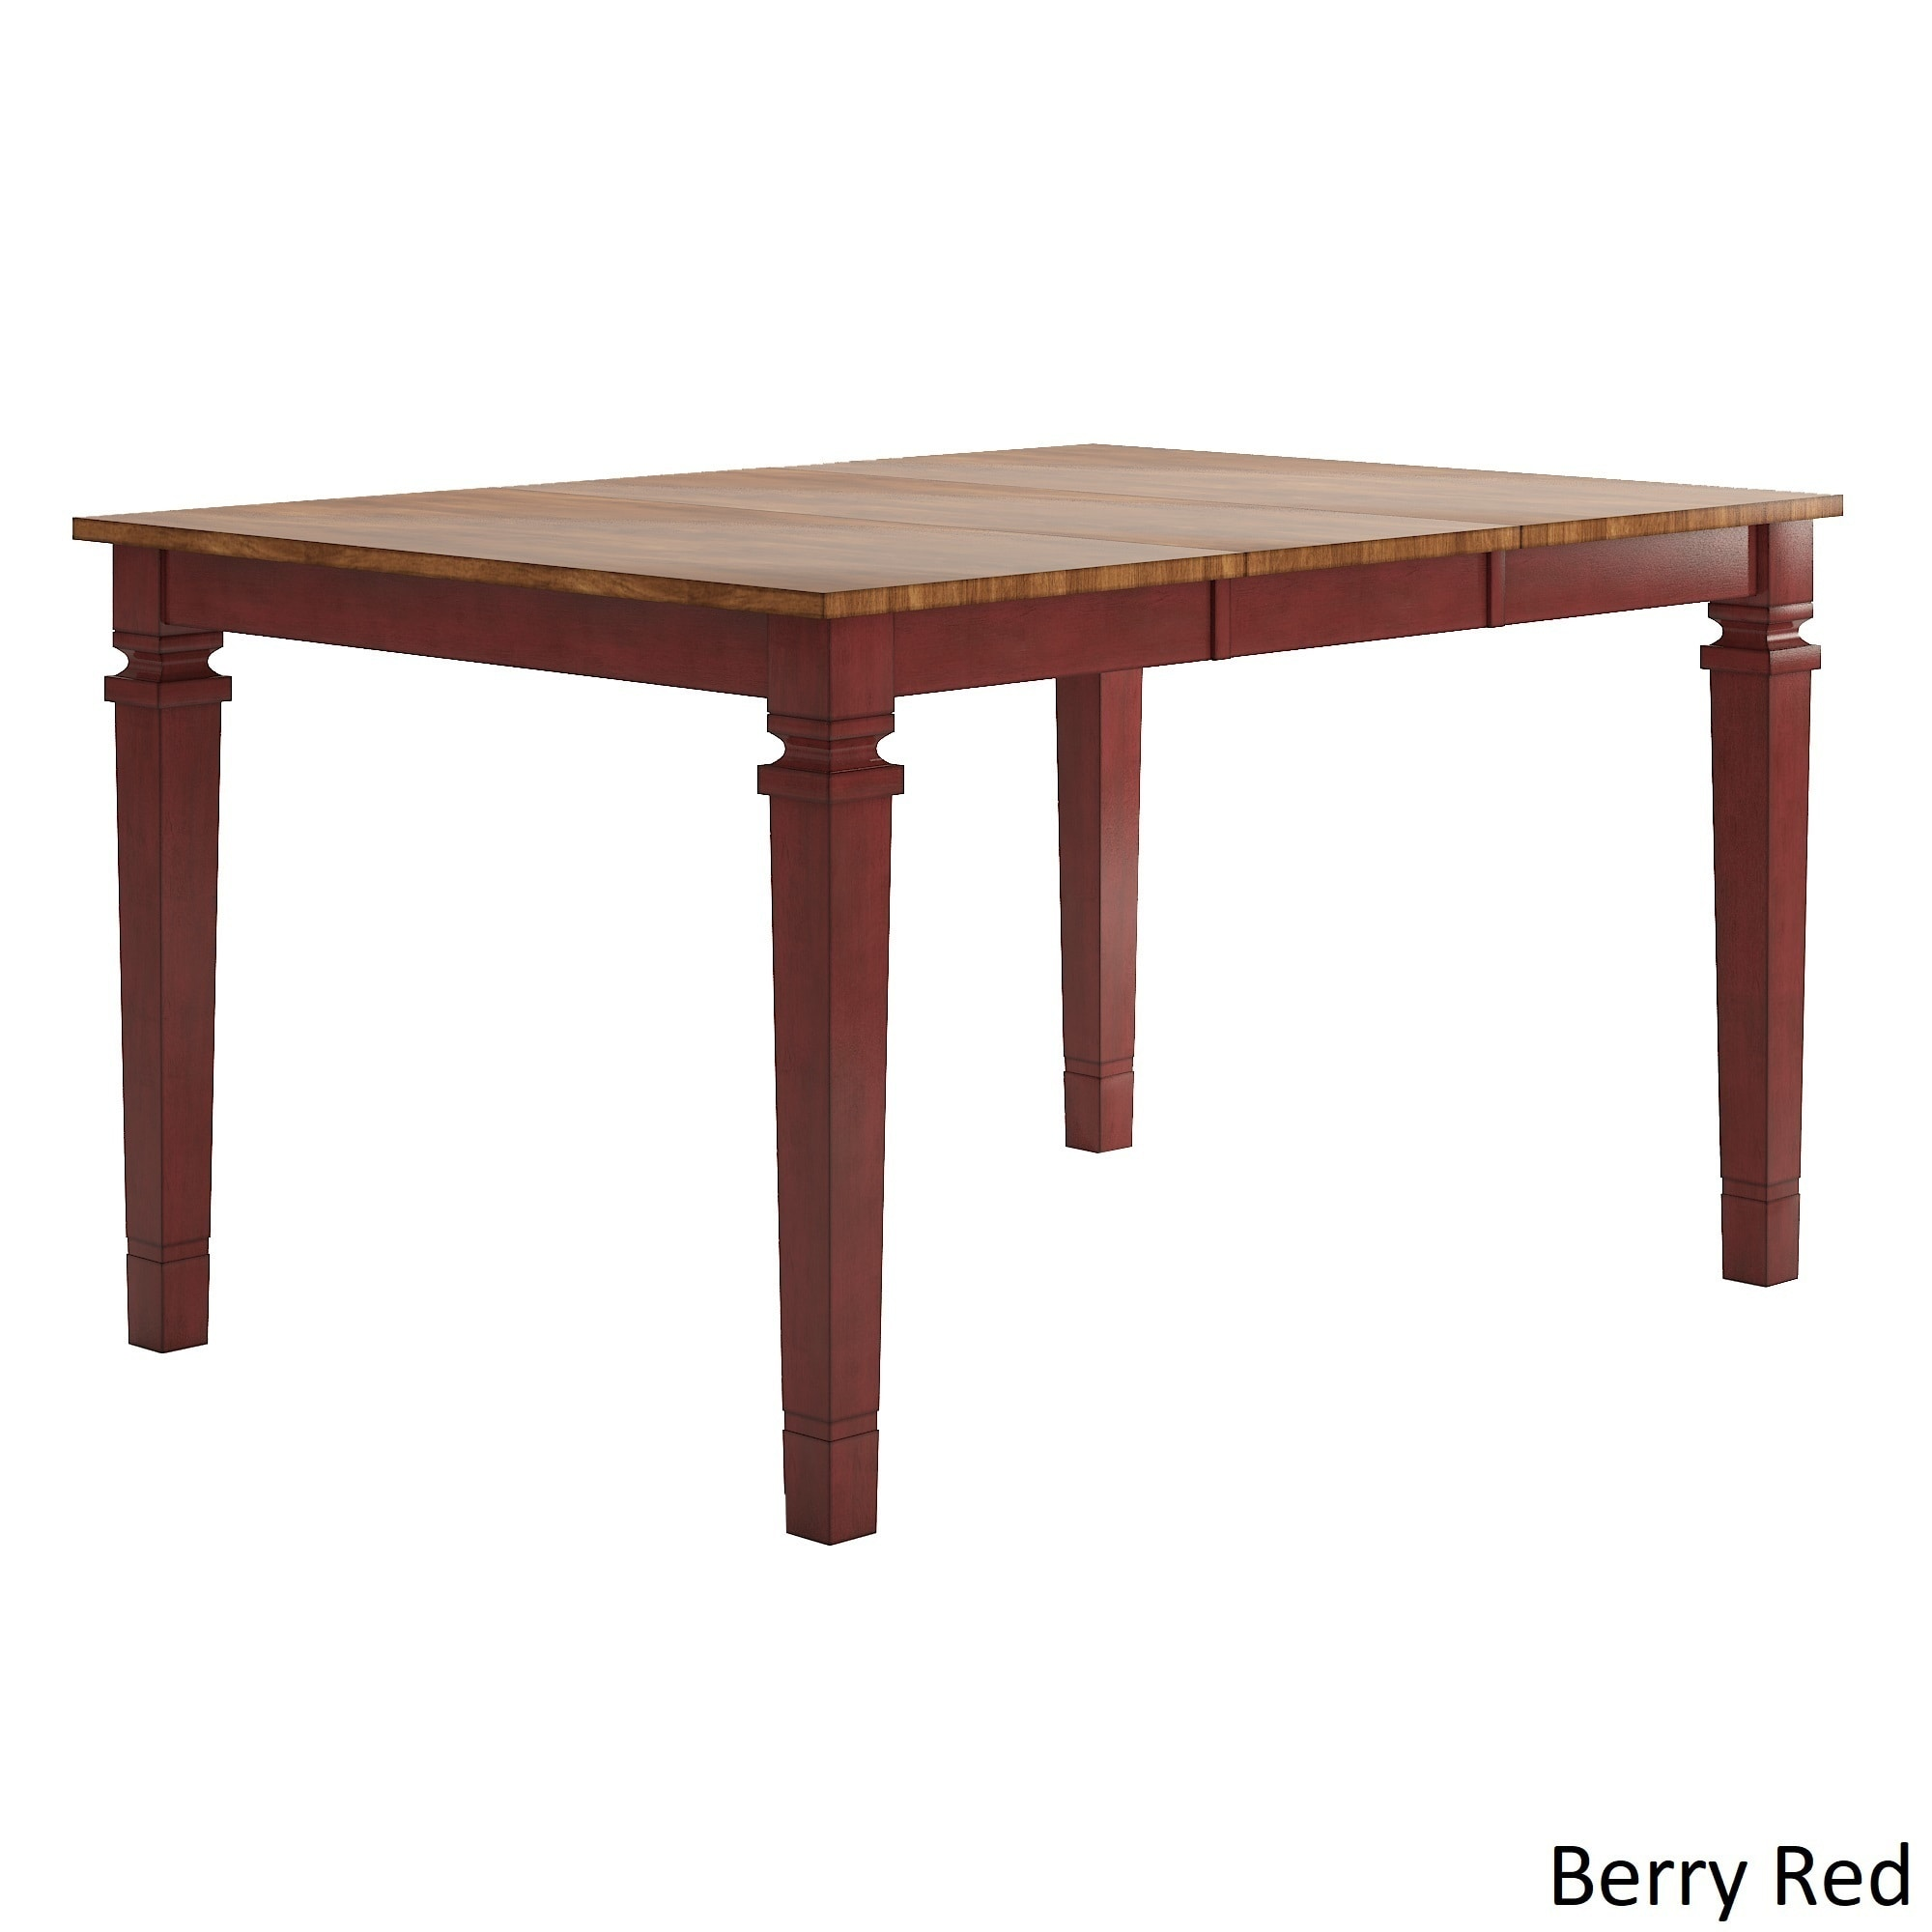 Elena Solid Wood Extendable Counter Height Dining Table By Inspire Q Classic On Sale Overstock 18218114